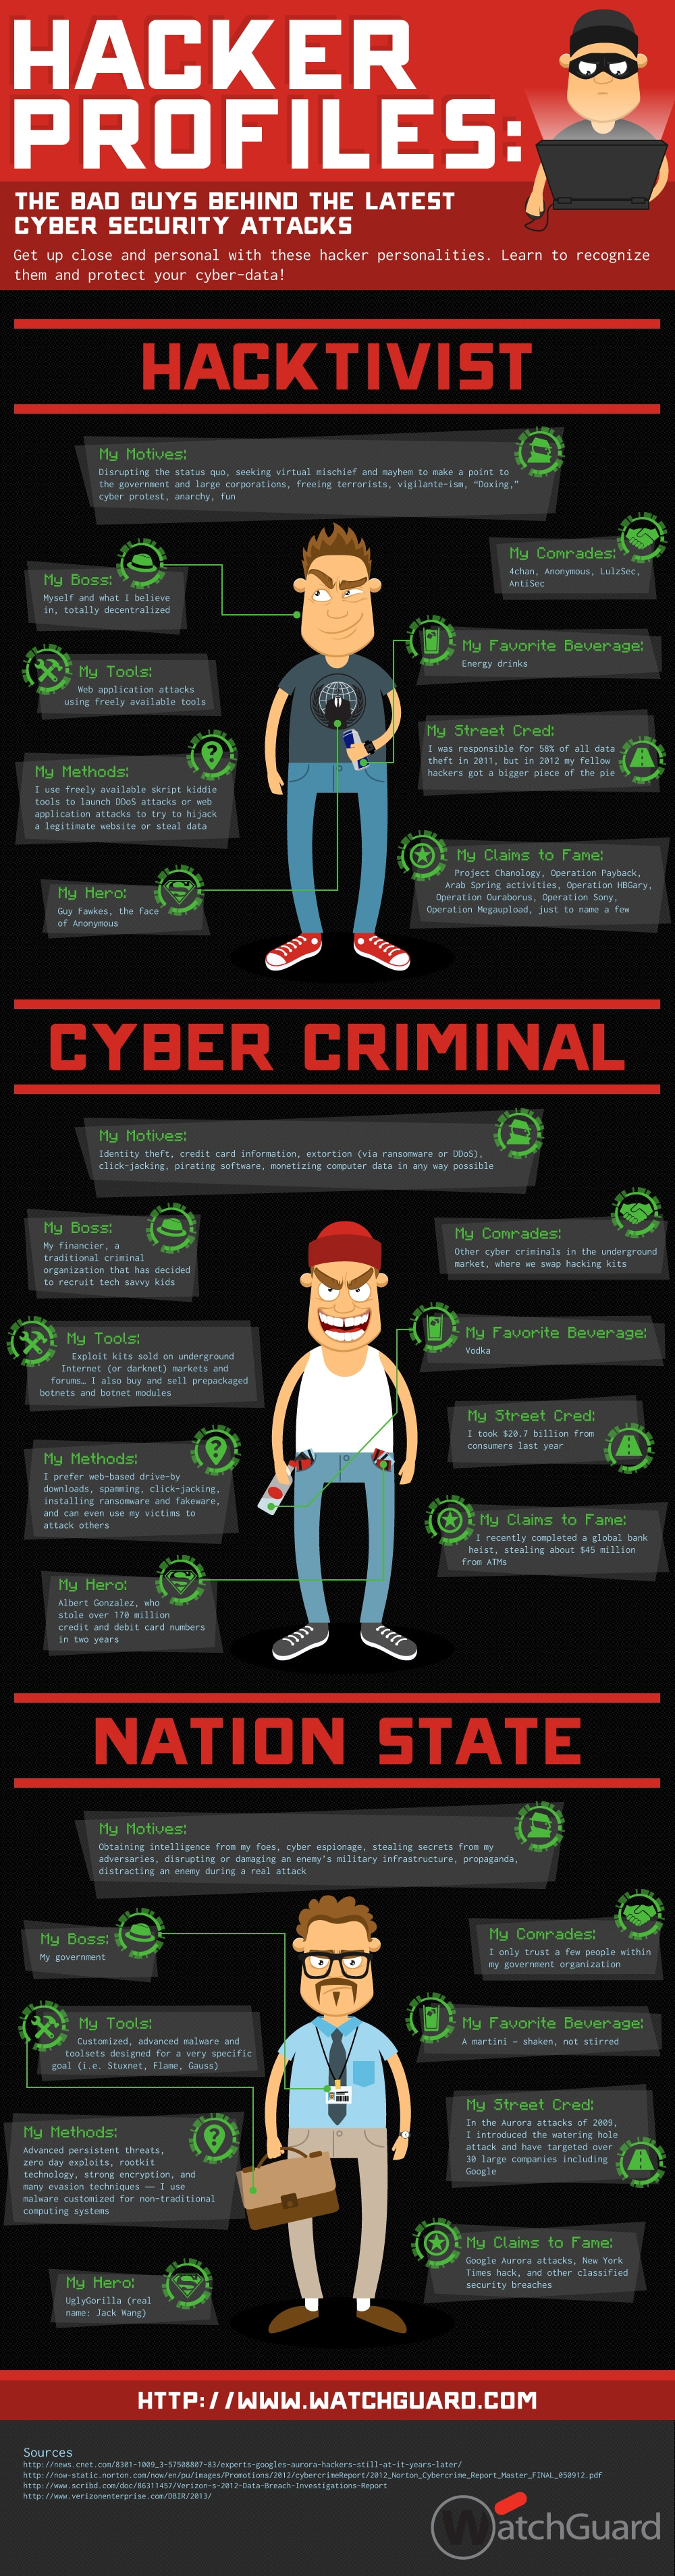 Hacker Profiles Bad Online Security Infographic